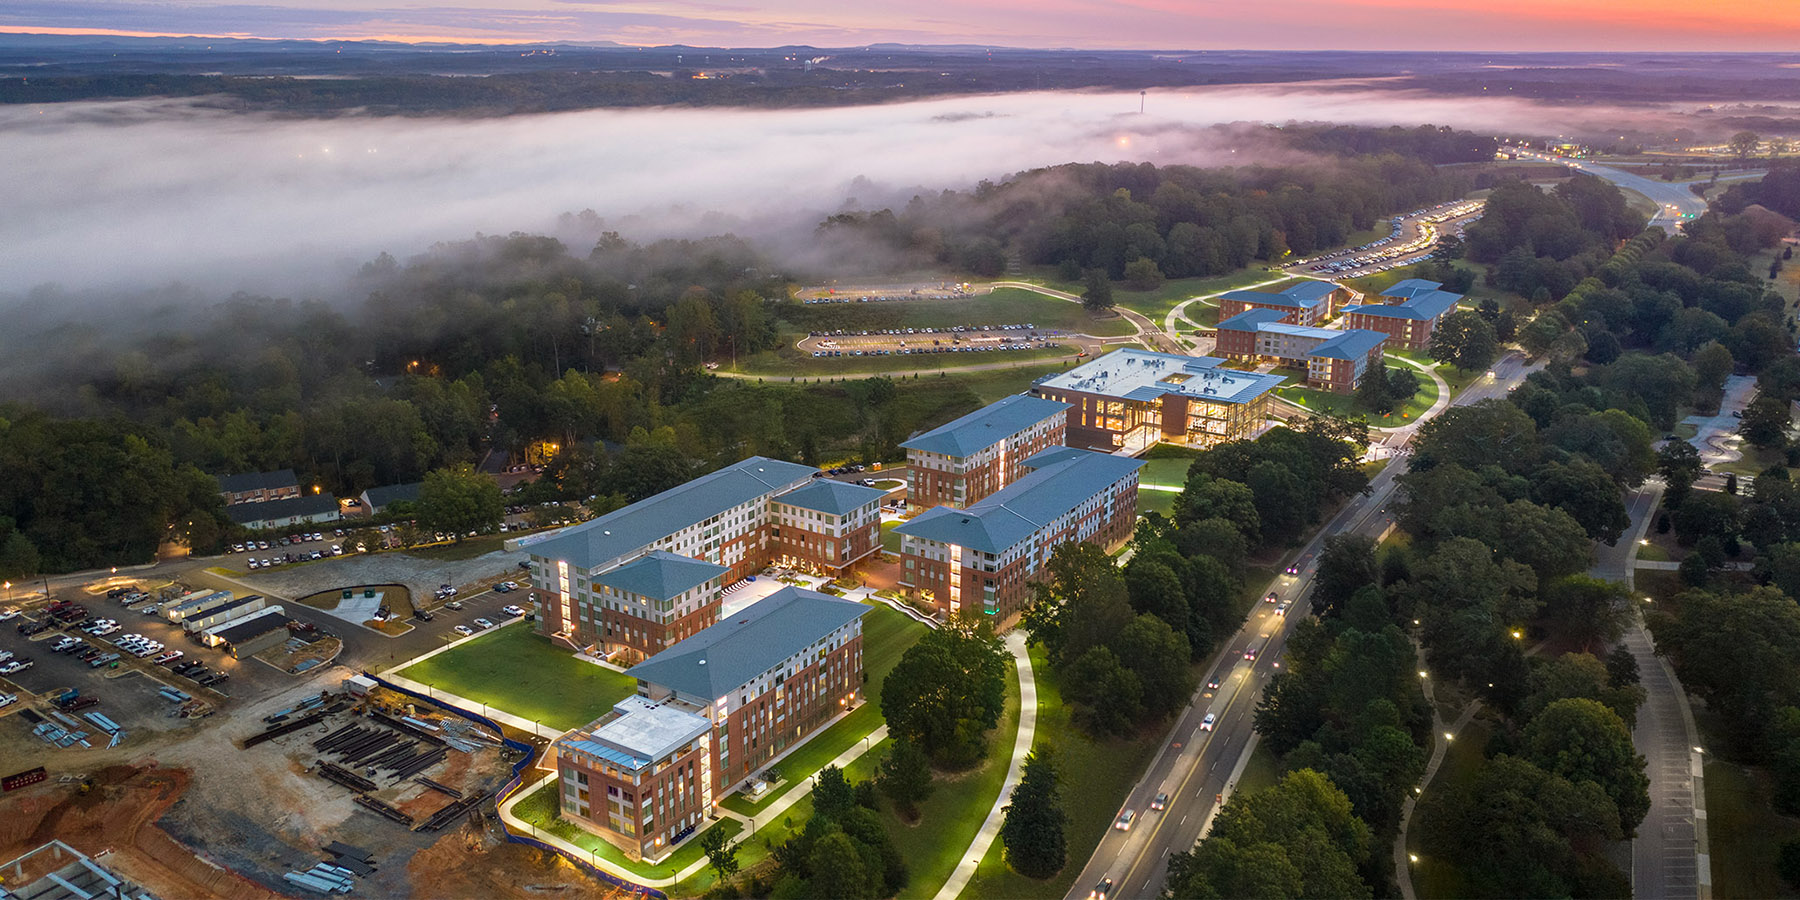 Boudreaux architects worked with Clemson University on the Douthit Hills HUB project.